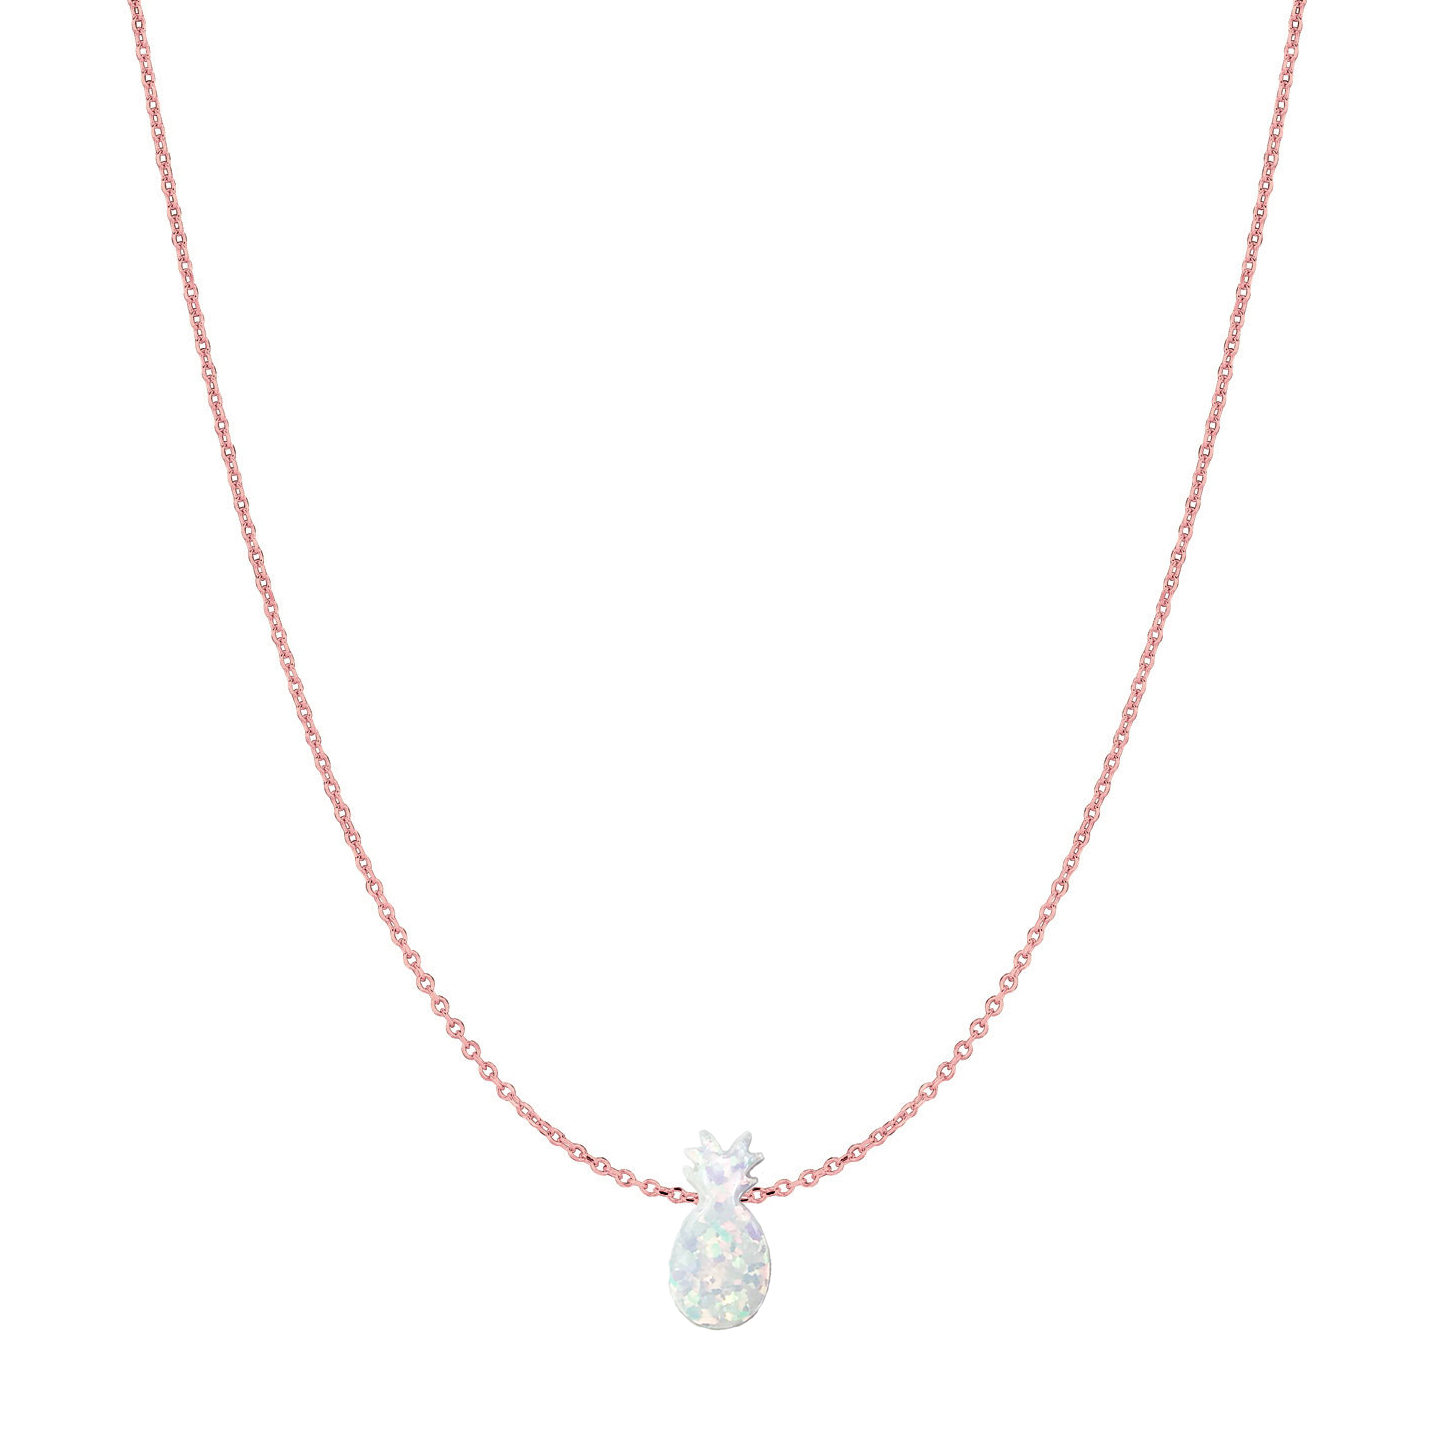 amazon dp gold and necklaces white necklace opal diamond with chain com jewelry pendant oval